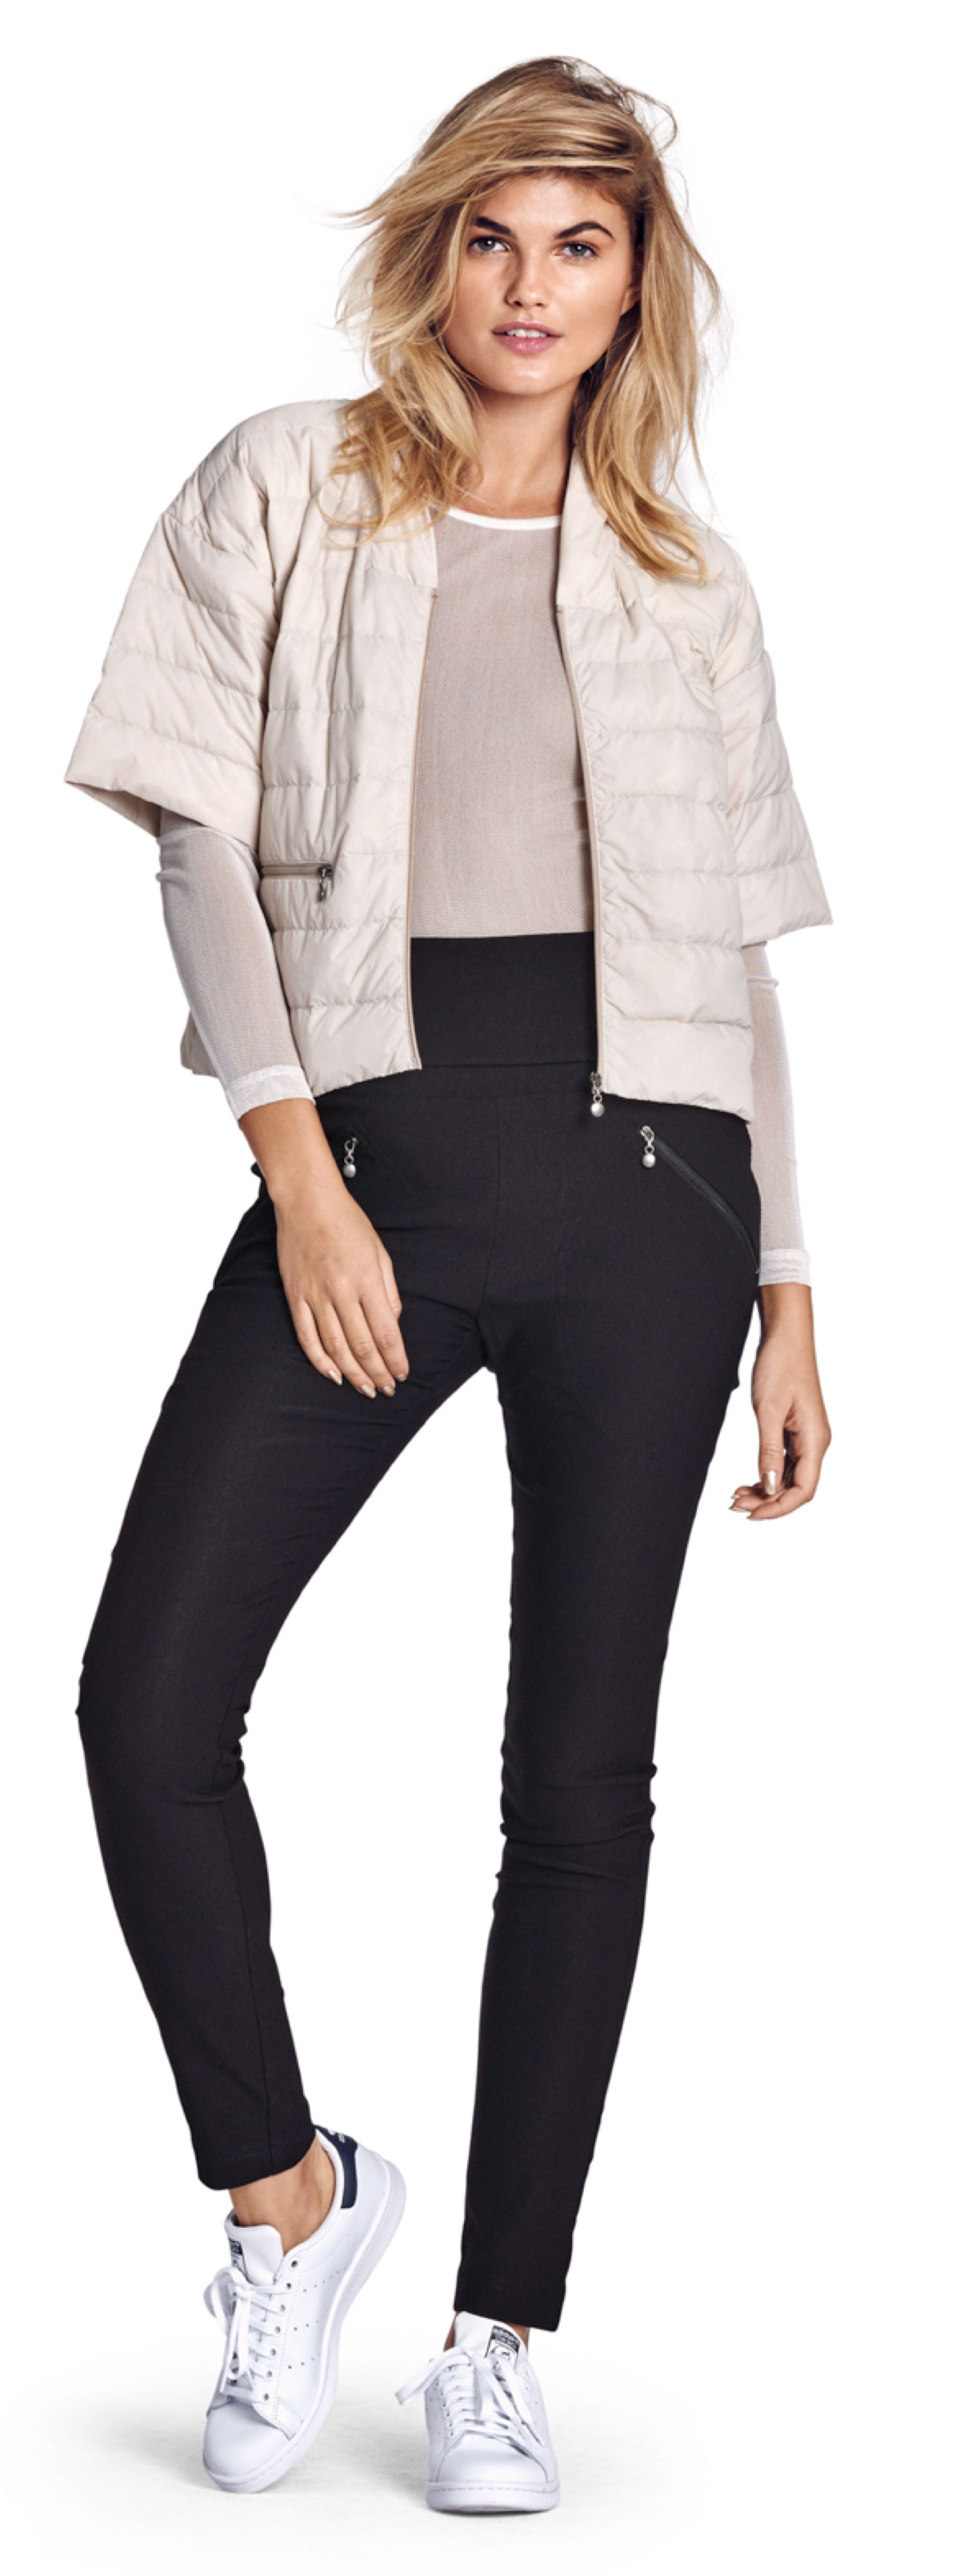 Cropped Puffy Jacket with Half-sleeve